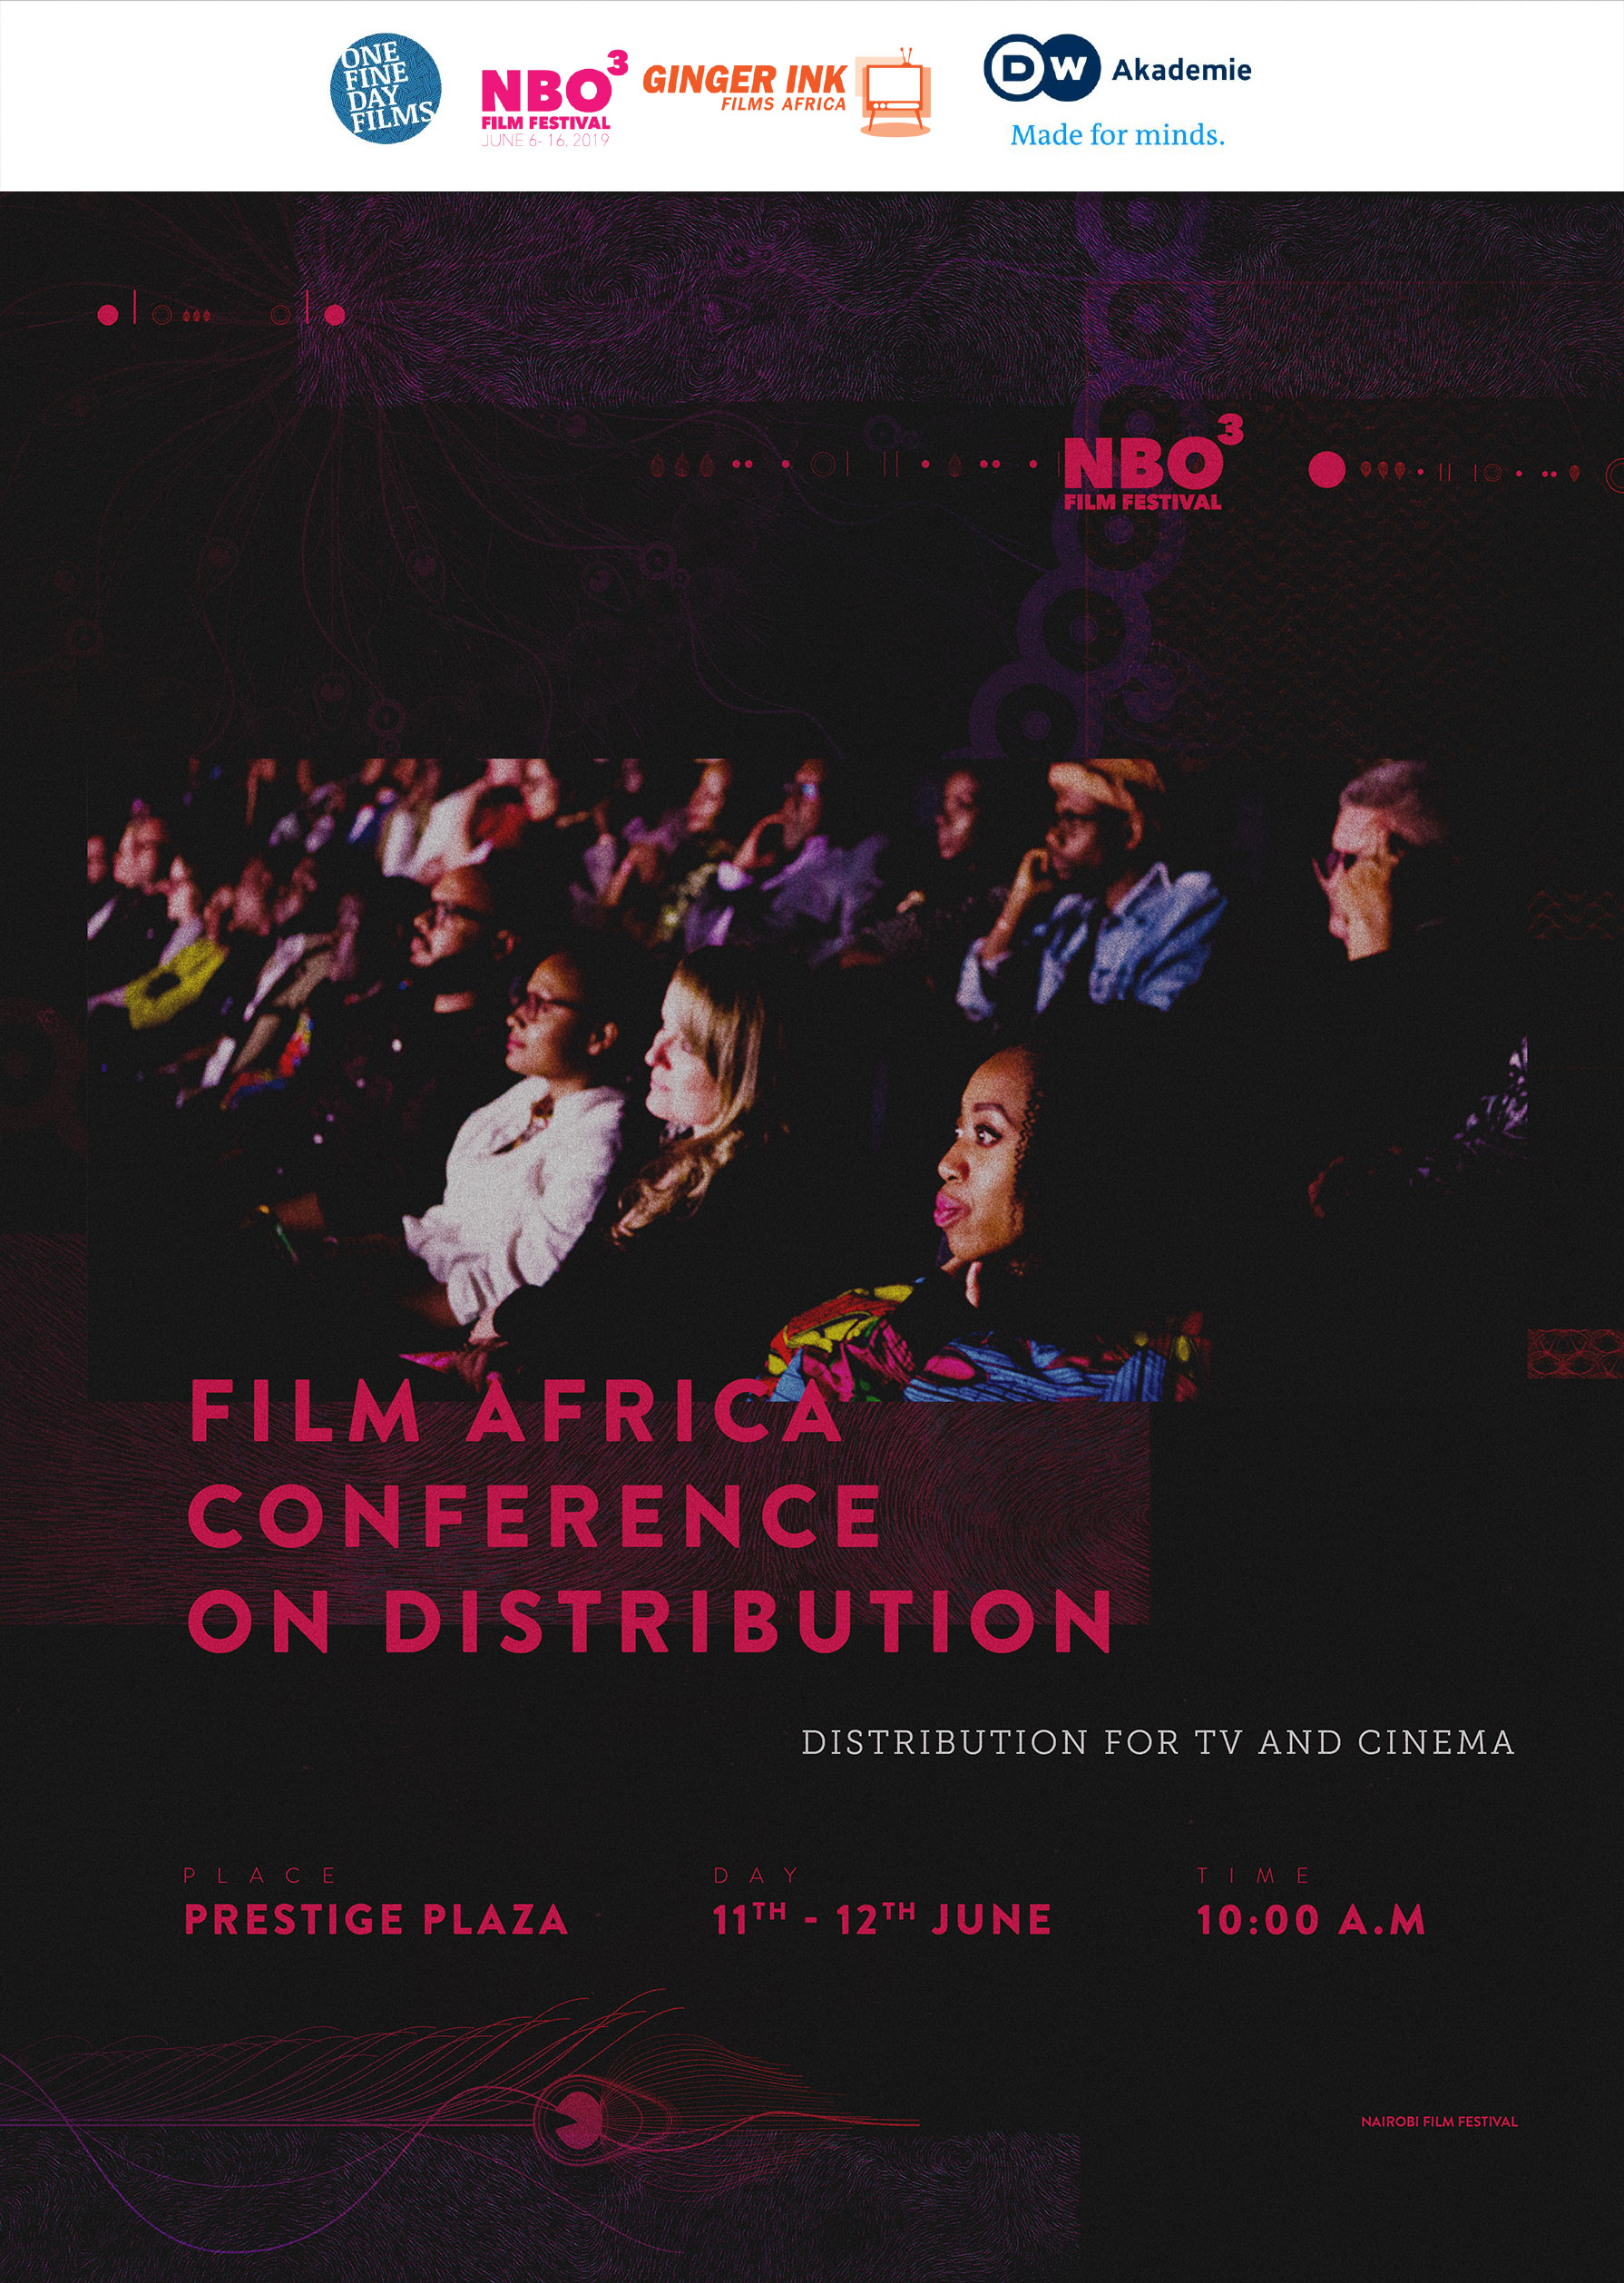 film africa conference A3 small jpeg.jpg